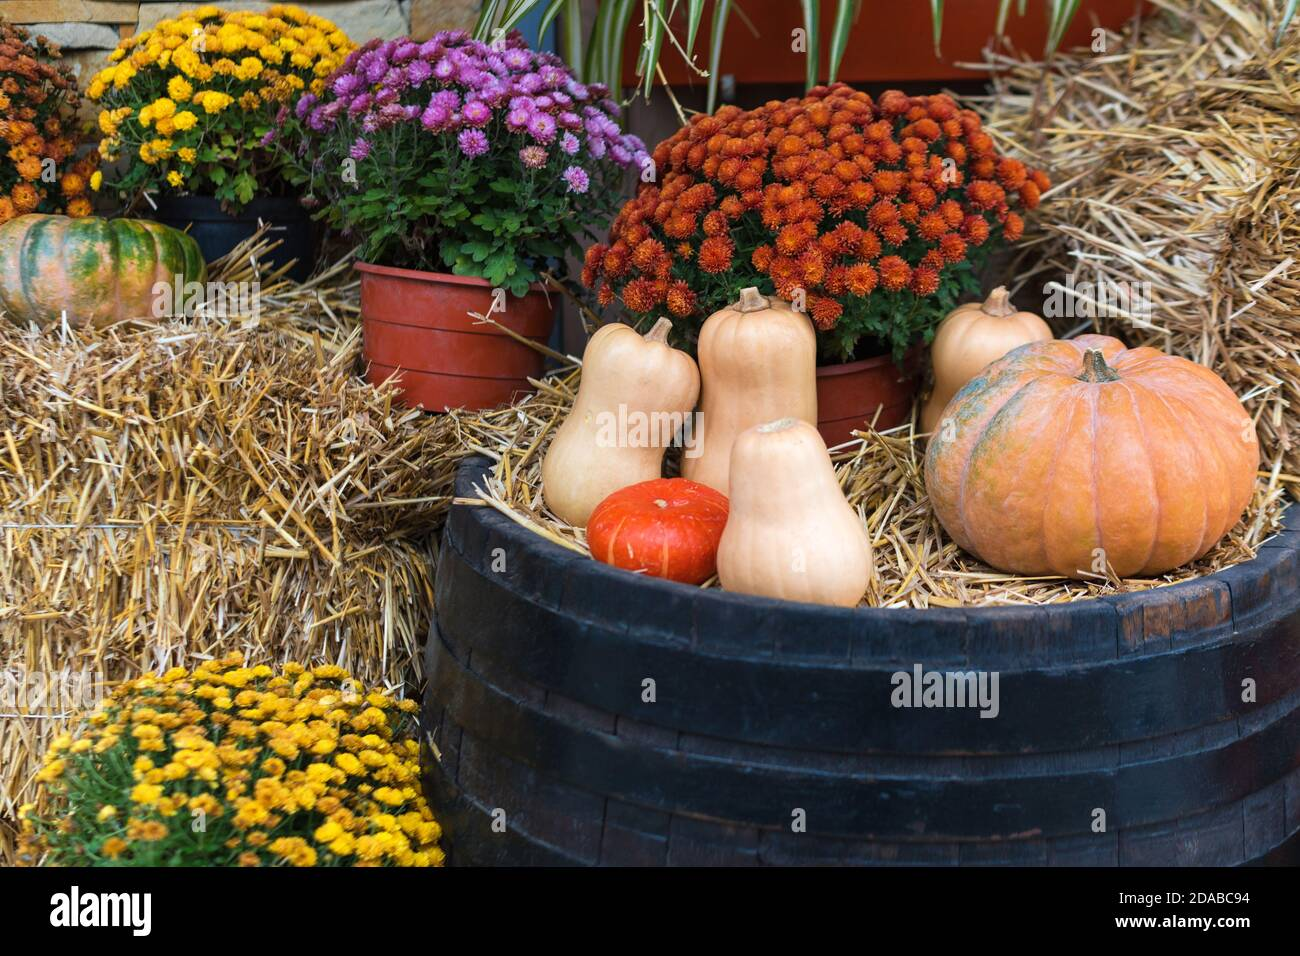 Autumn Decor With Natural Straw Bale Pumpkins Flowers And Old Wooden Barrels Harvest And Garden Outdoor Decorations For Halloween Thanksgiving Stock Photo Alamy